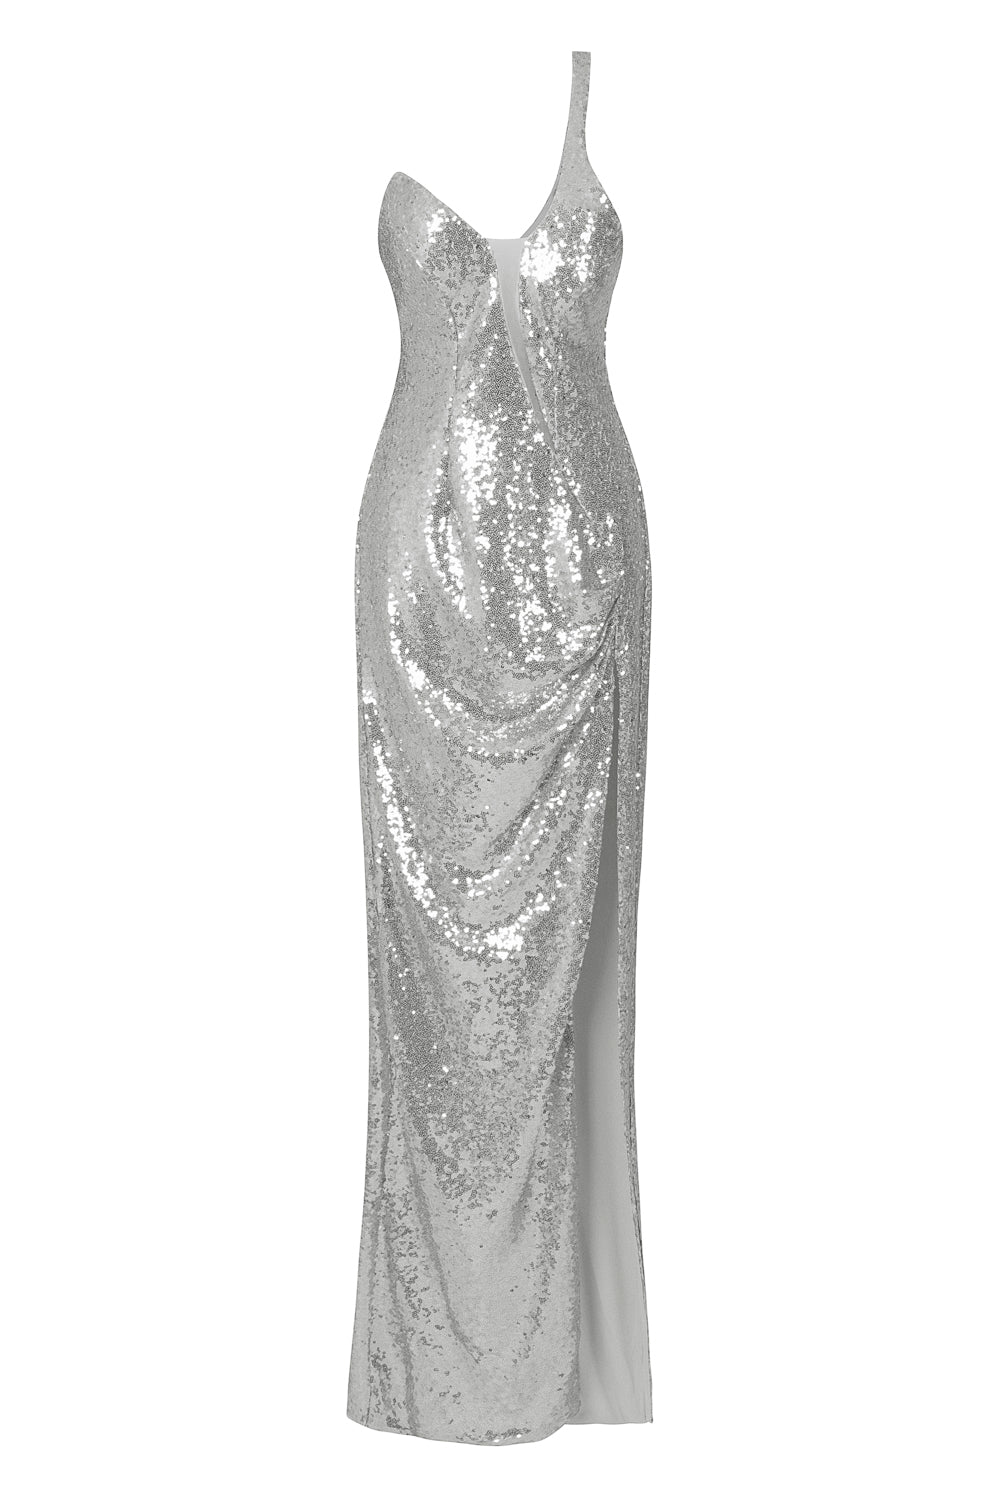 Shine On Me Silver Sequin Mesh One Shoulder Slit Maxi Dress